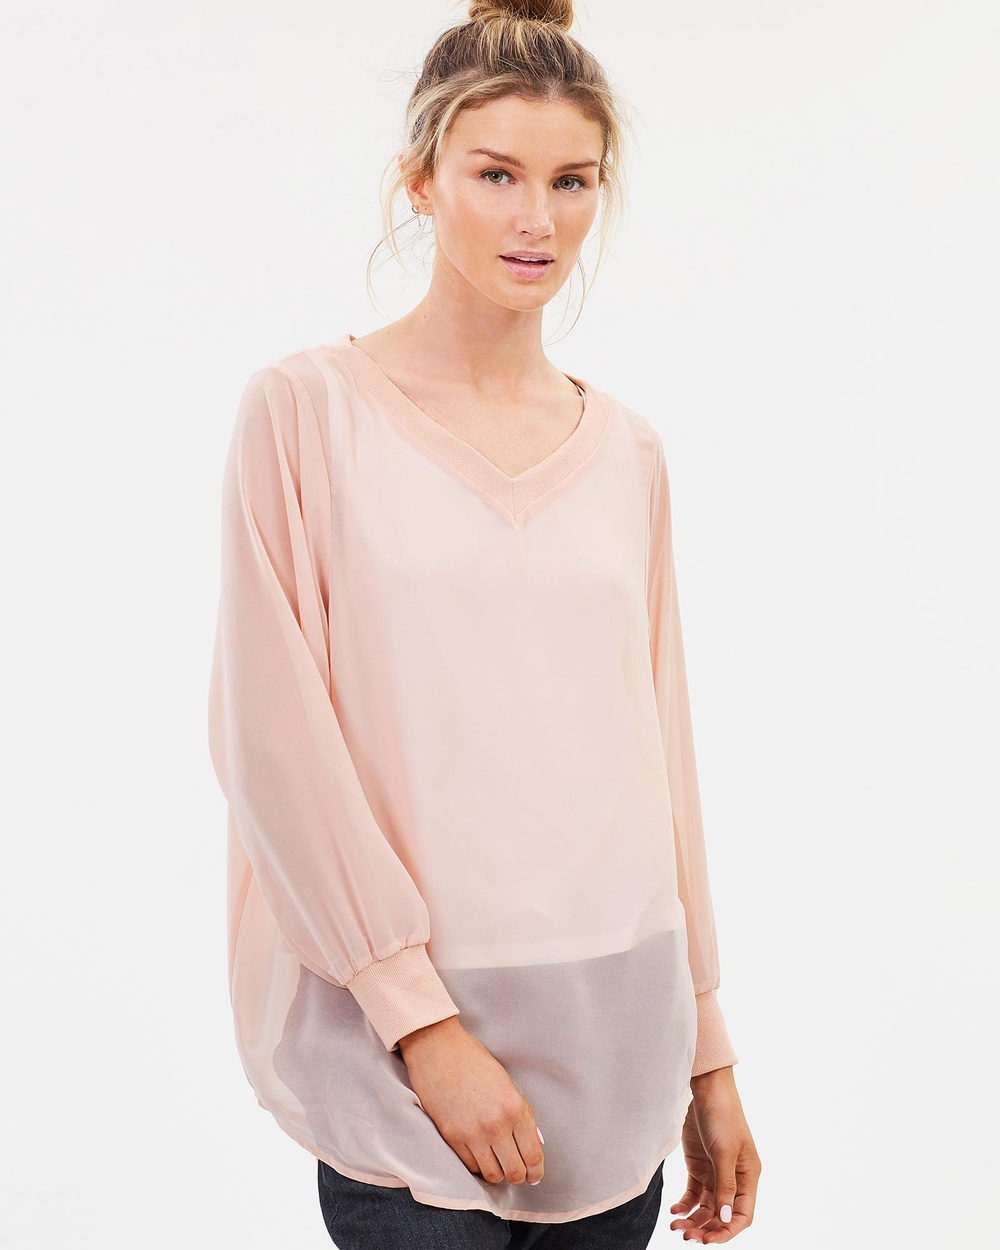 Lincoln St The Sheer 2 Way Pullover Tops Blush The Sheer 2-Way Pullover